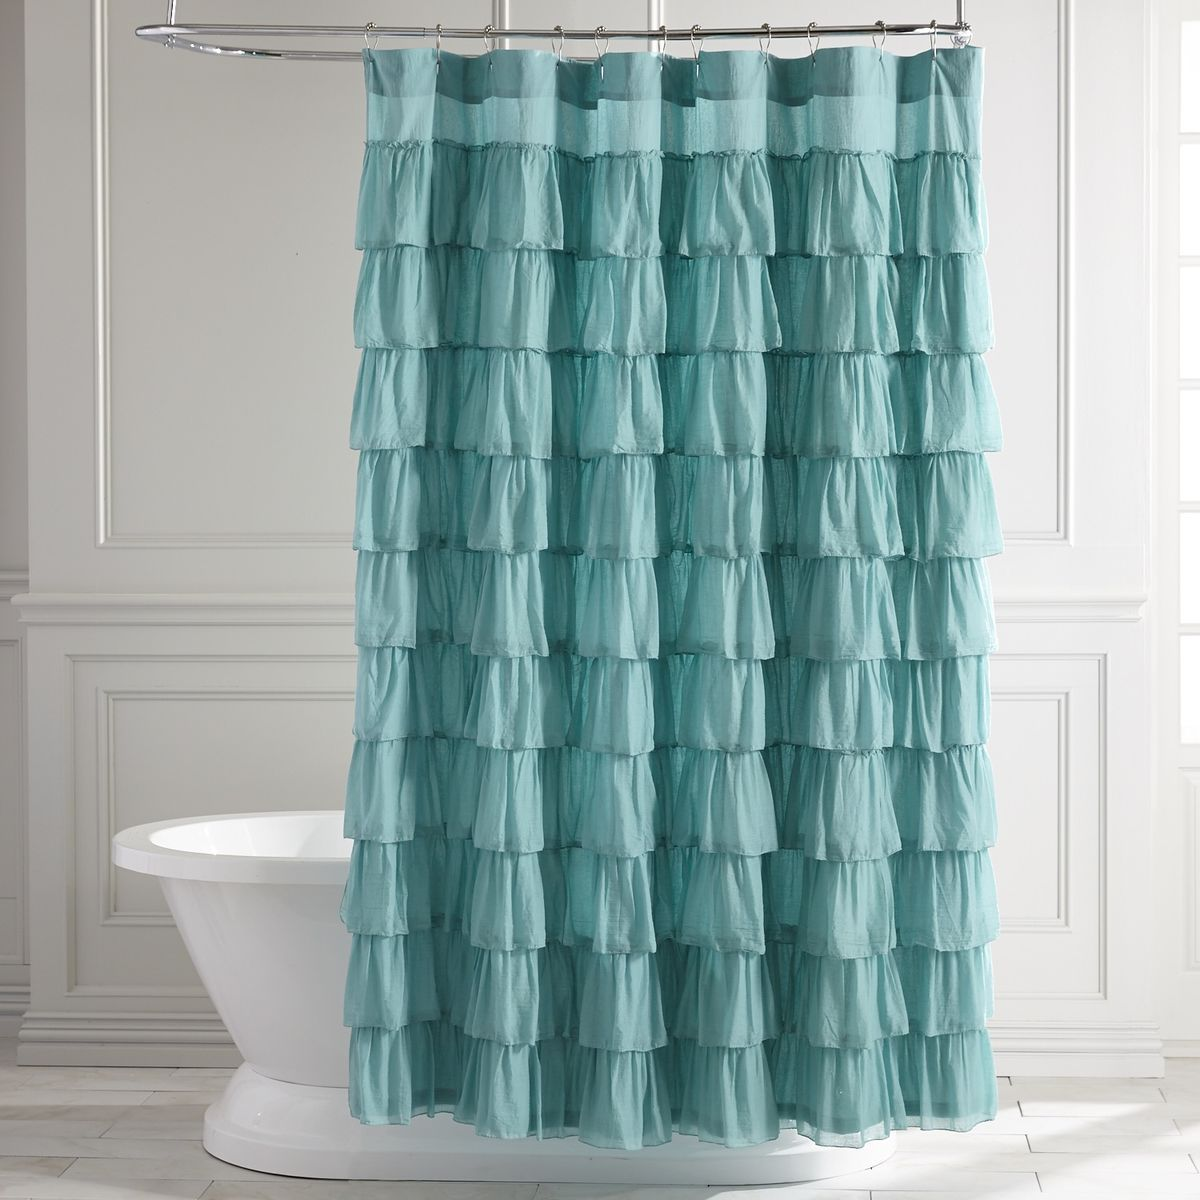 Ruffled Turquoise Shower Curtain Turquoise Shower Curtain